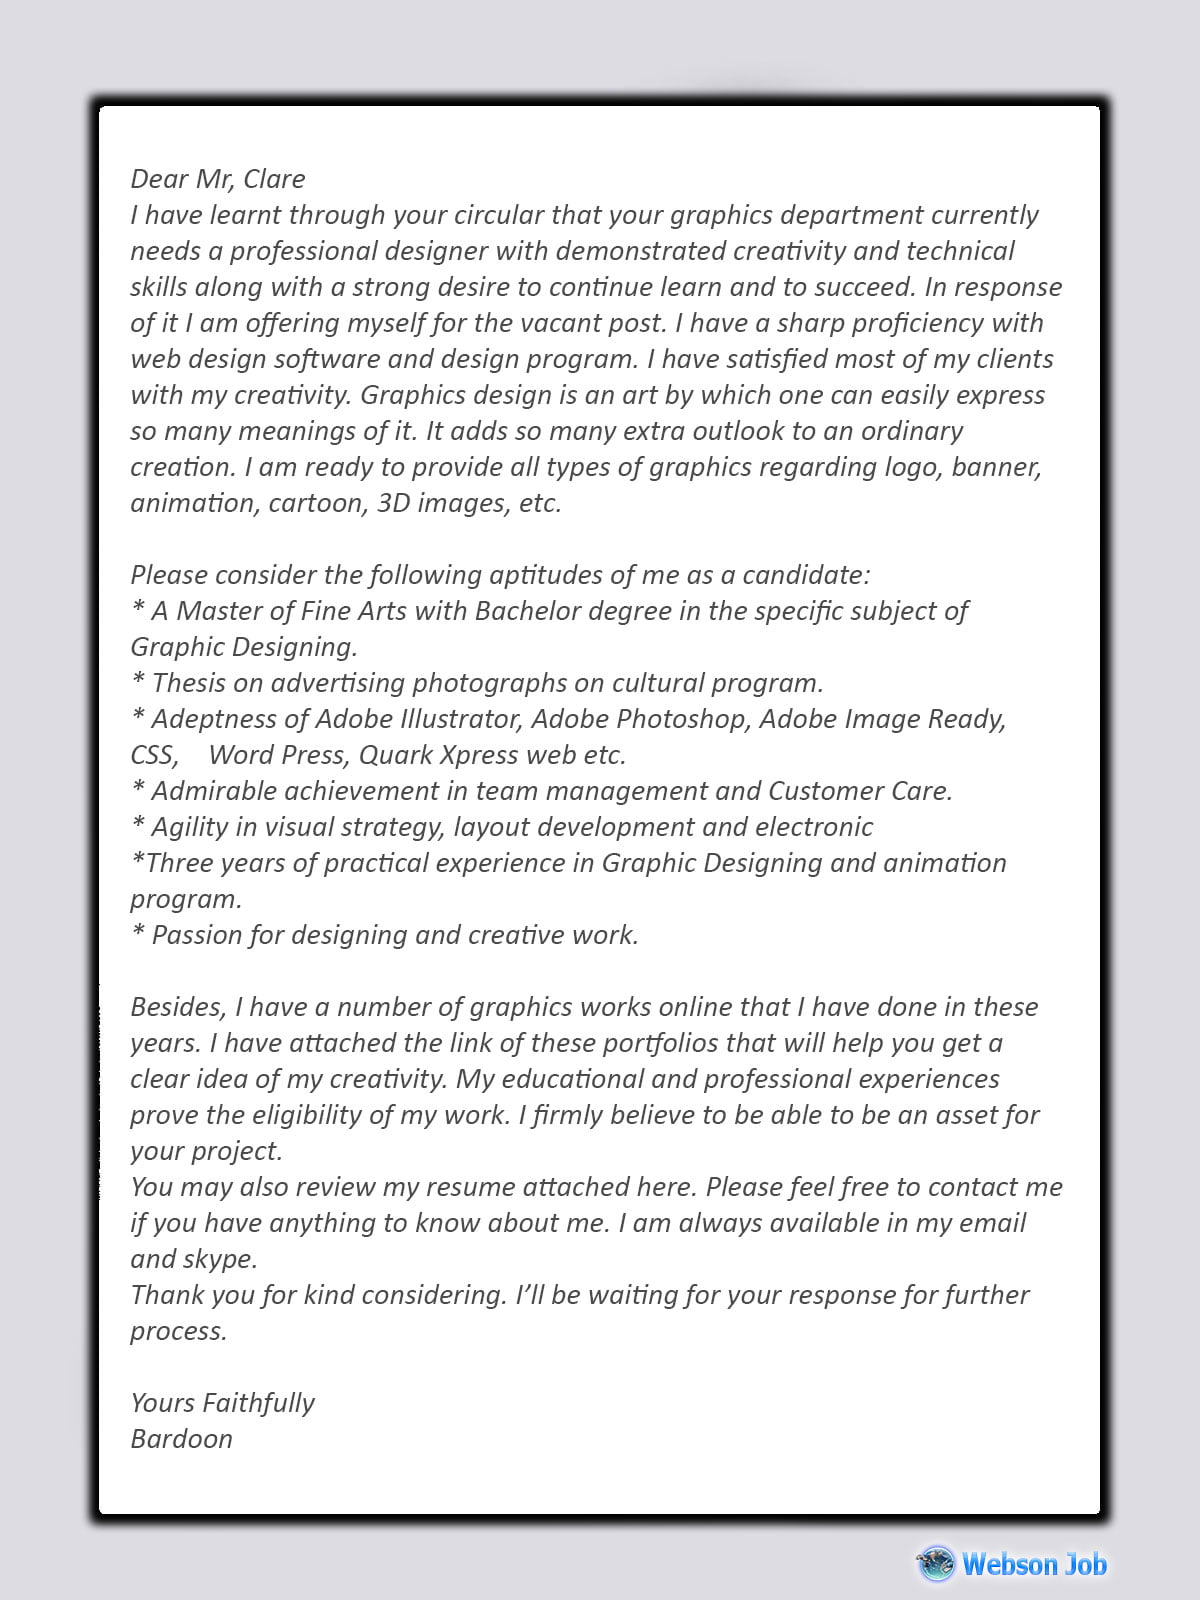 Graphics Designer Cover Letter Sample And Format For